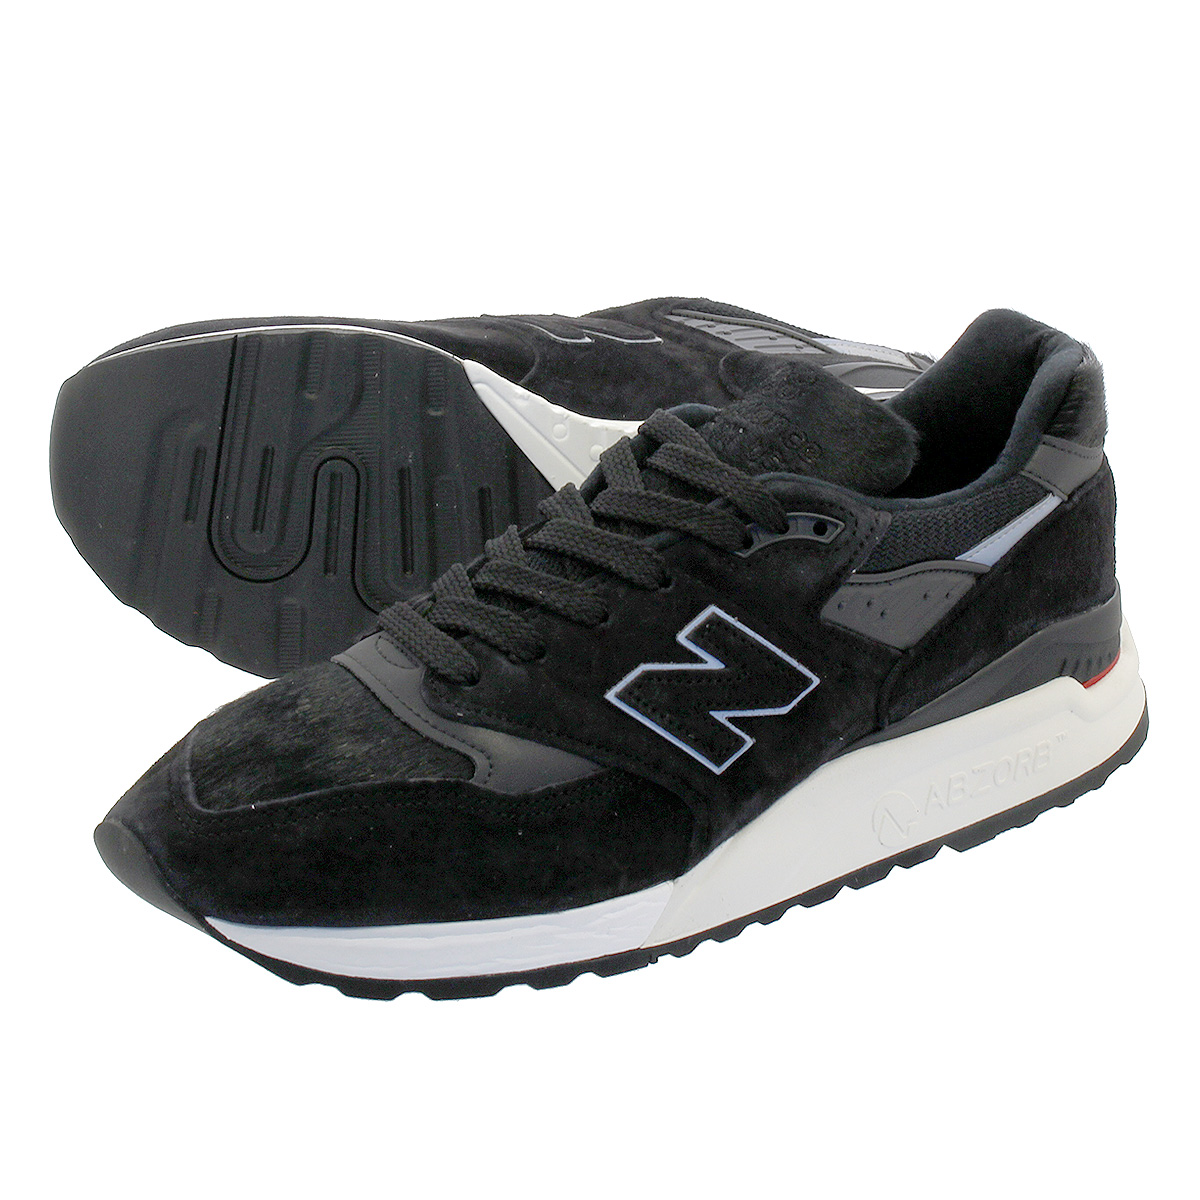 NEW BALANCE M998TCB 【MADE IN U.S.A.】 【Dワイズ】 ニューバランス M 998 TCB BLACK